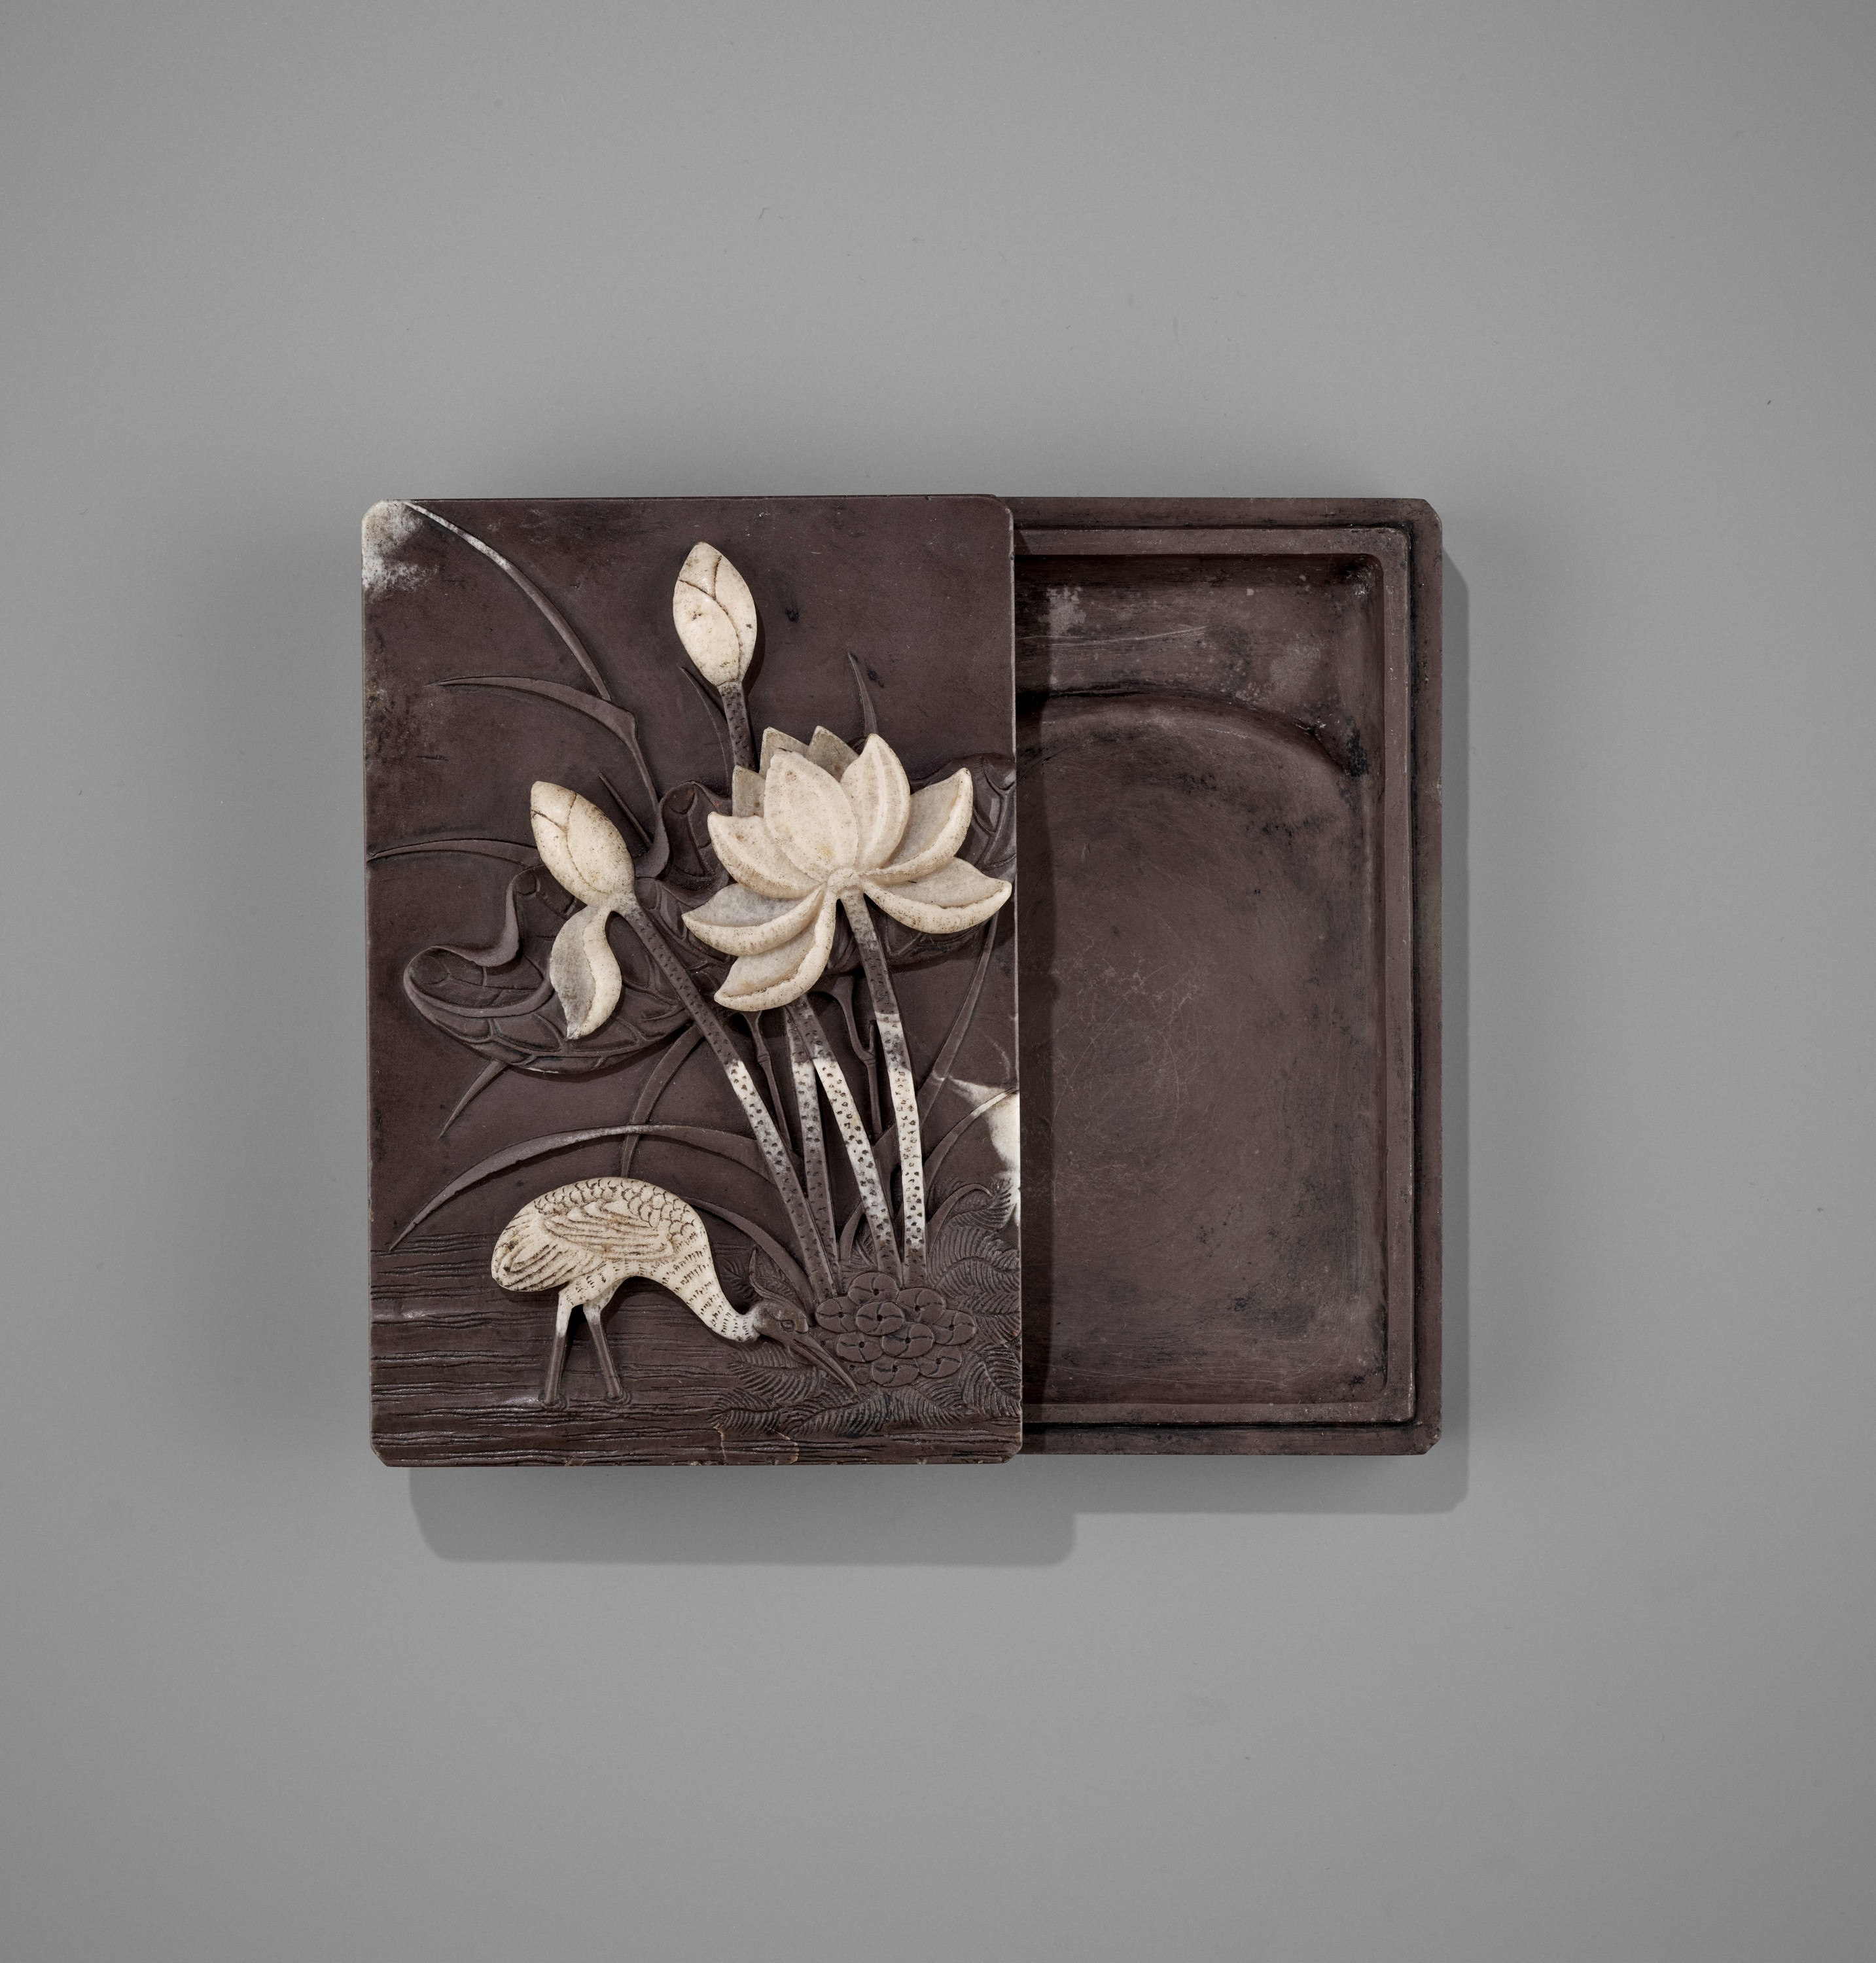 A DUAN 'CRANE AND LOTUS' INKSTONE AND COVER, QING